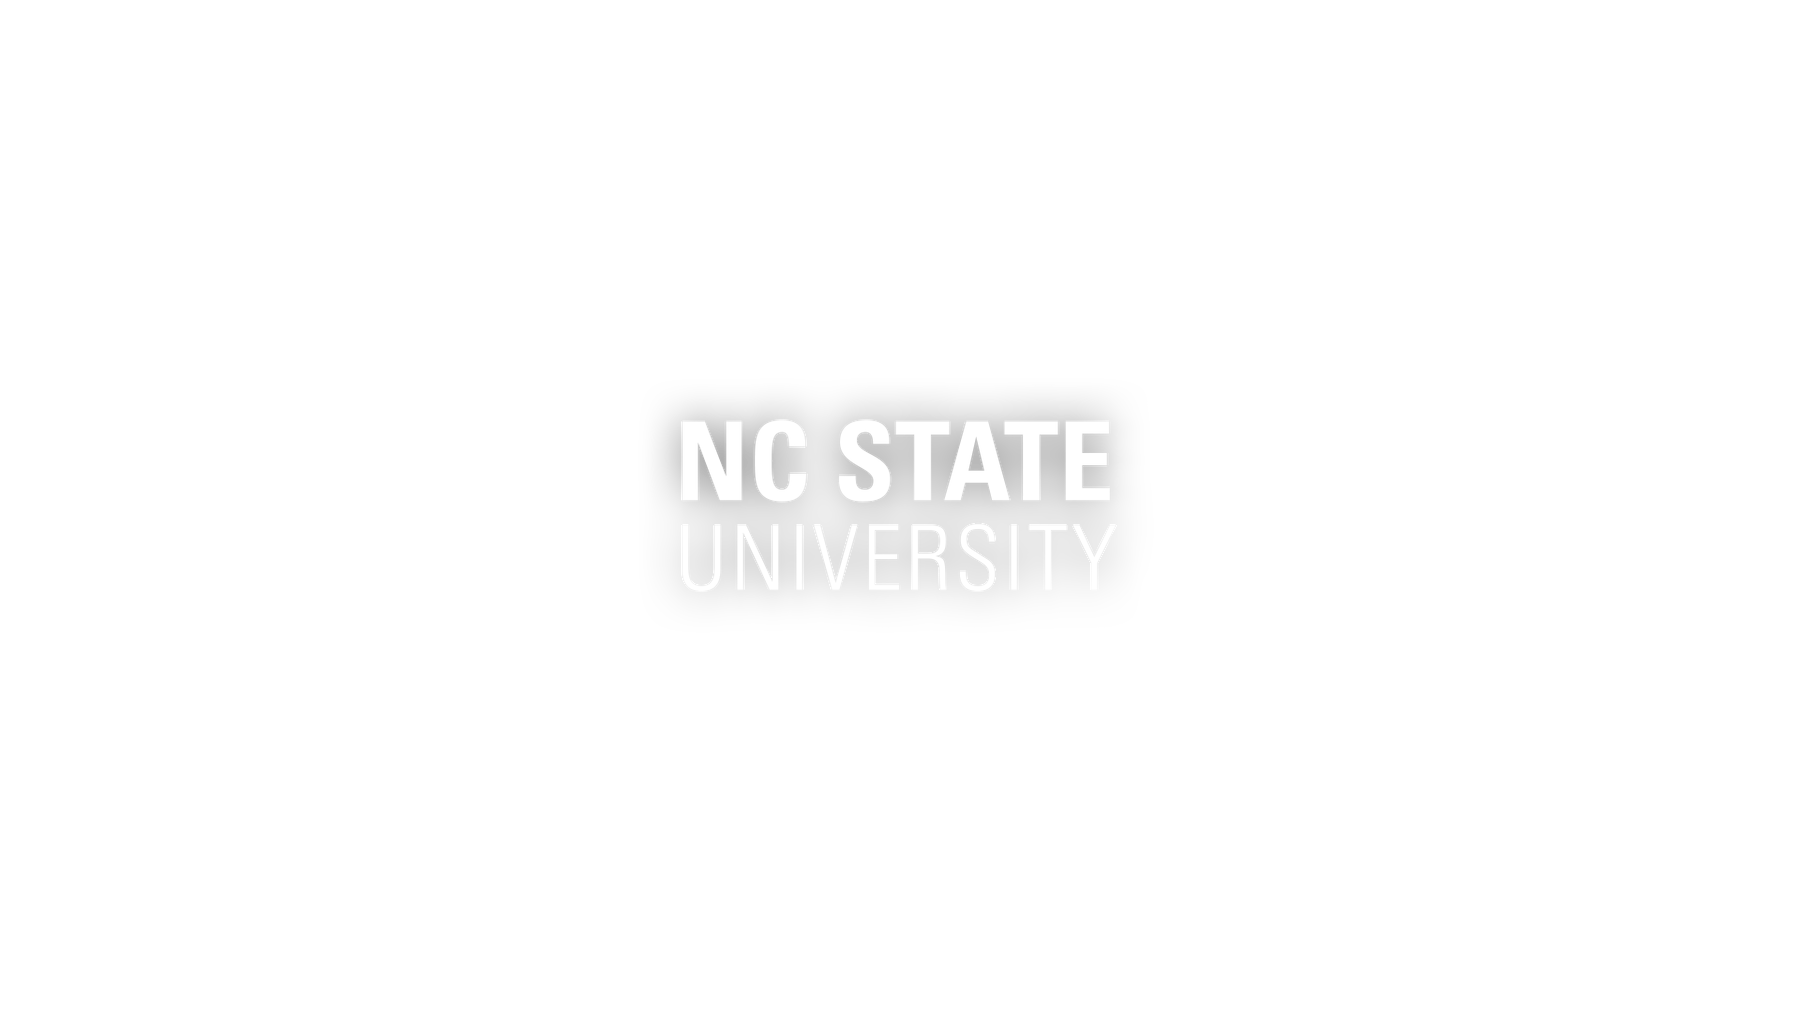 Nc state logo center